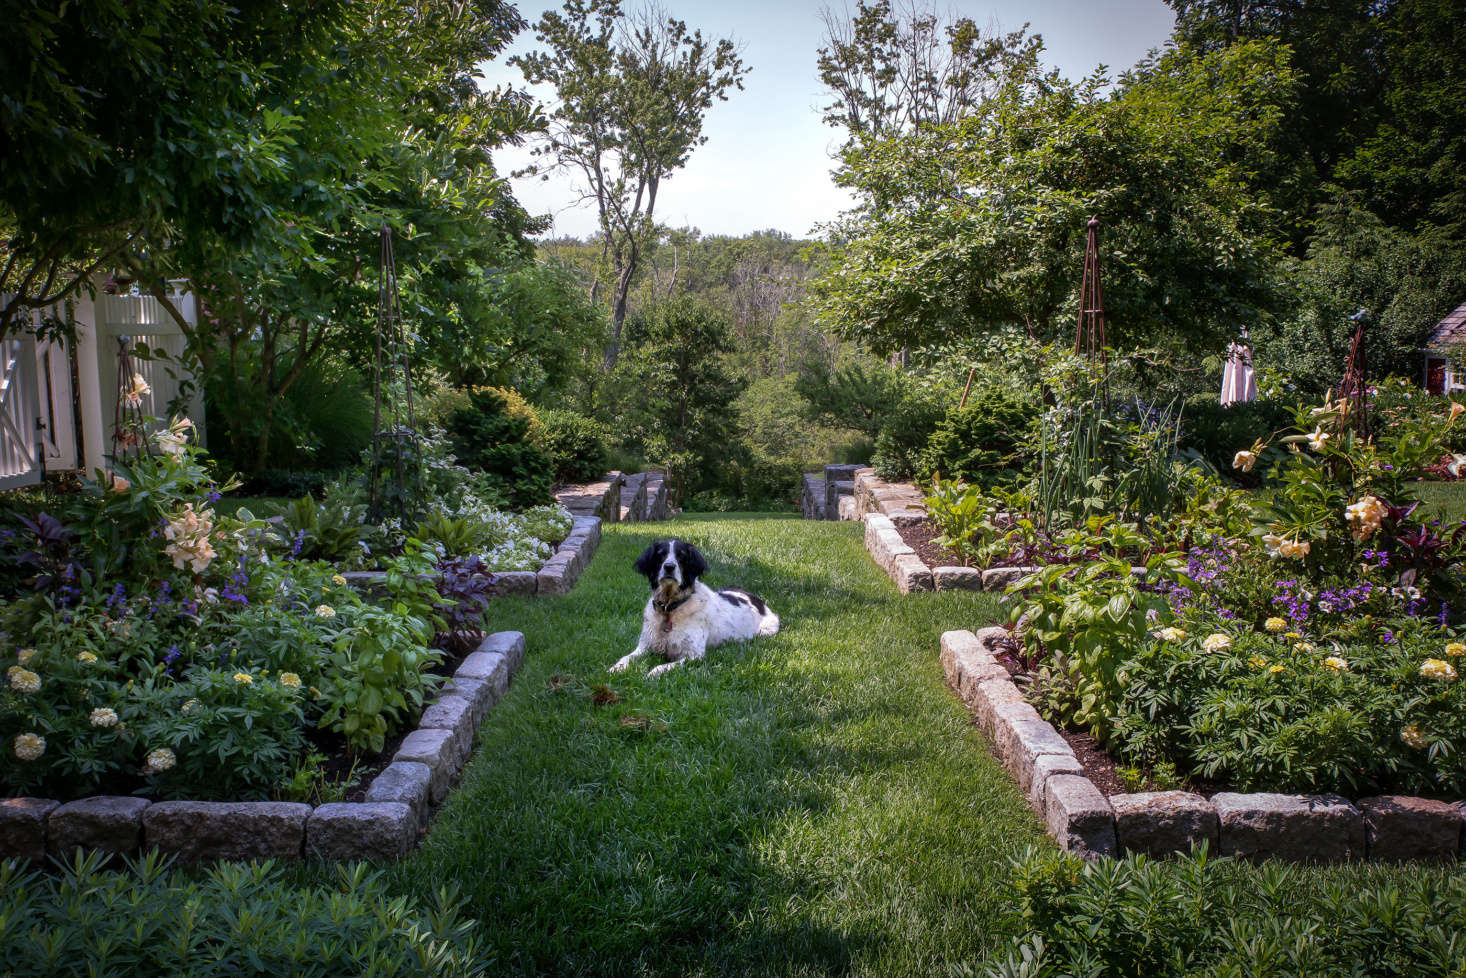 Photograph by Justine Hand for Gardenista, from Landscape Designer Visit: A Charming Cottage Garden Outside of Boston.